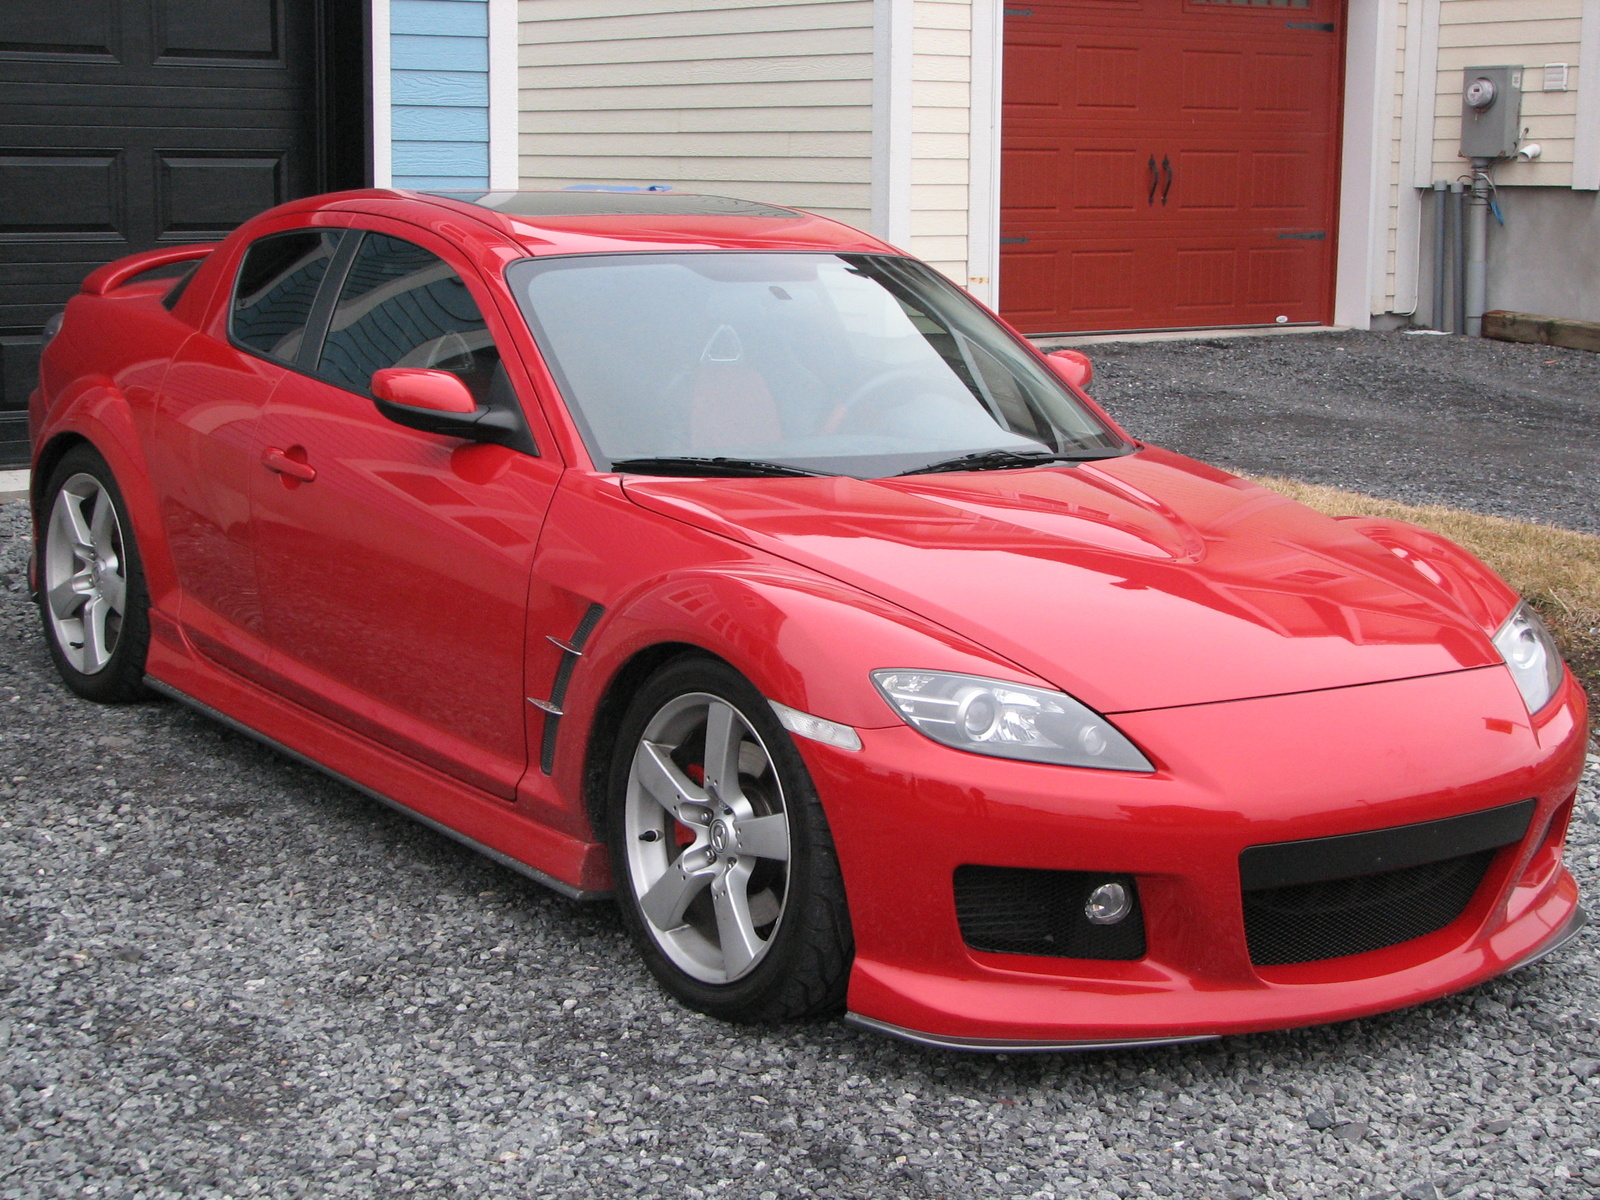 2005 Mazda RX-8 6-Speed picture